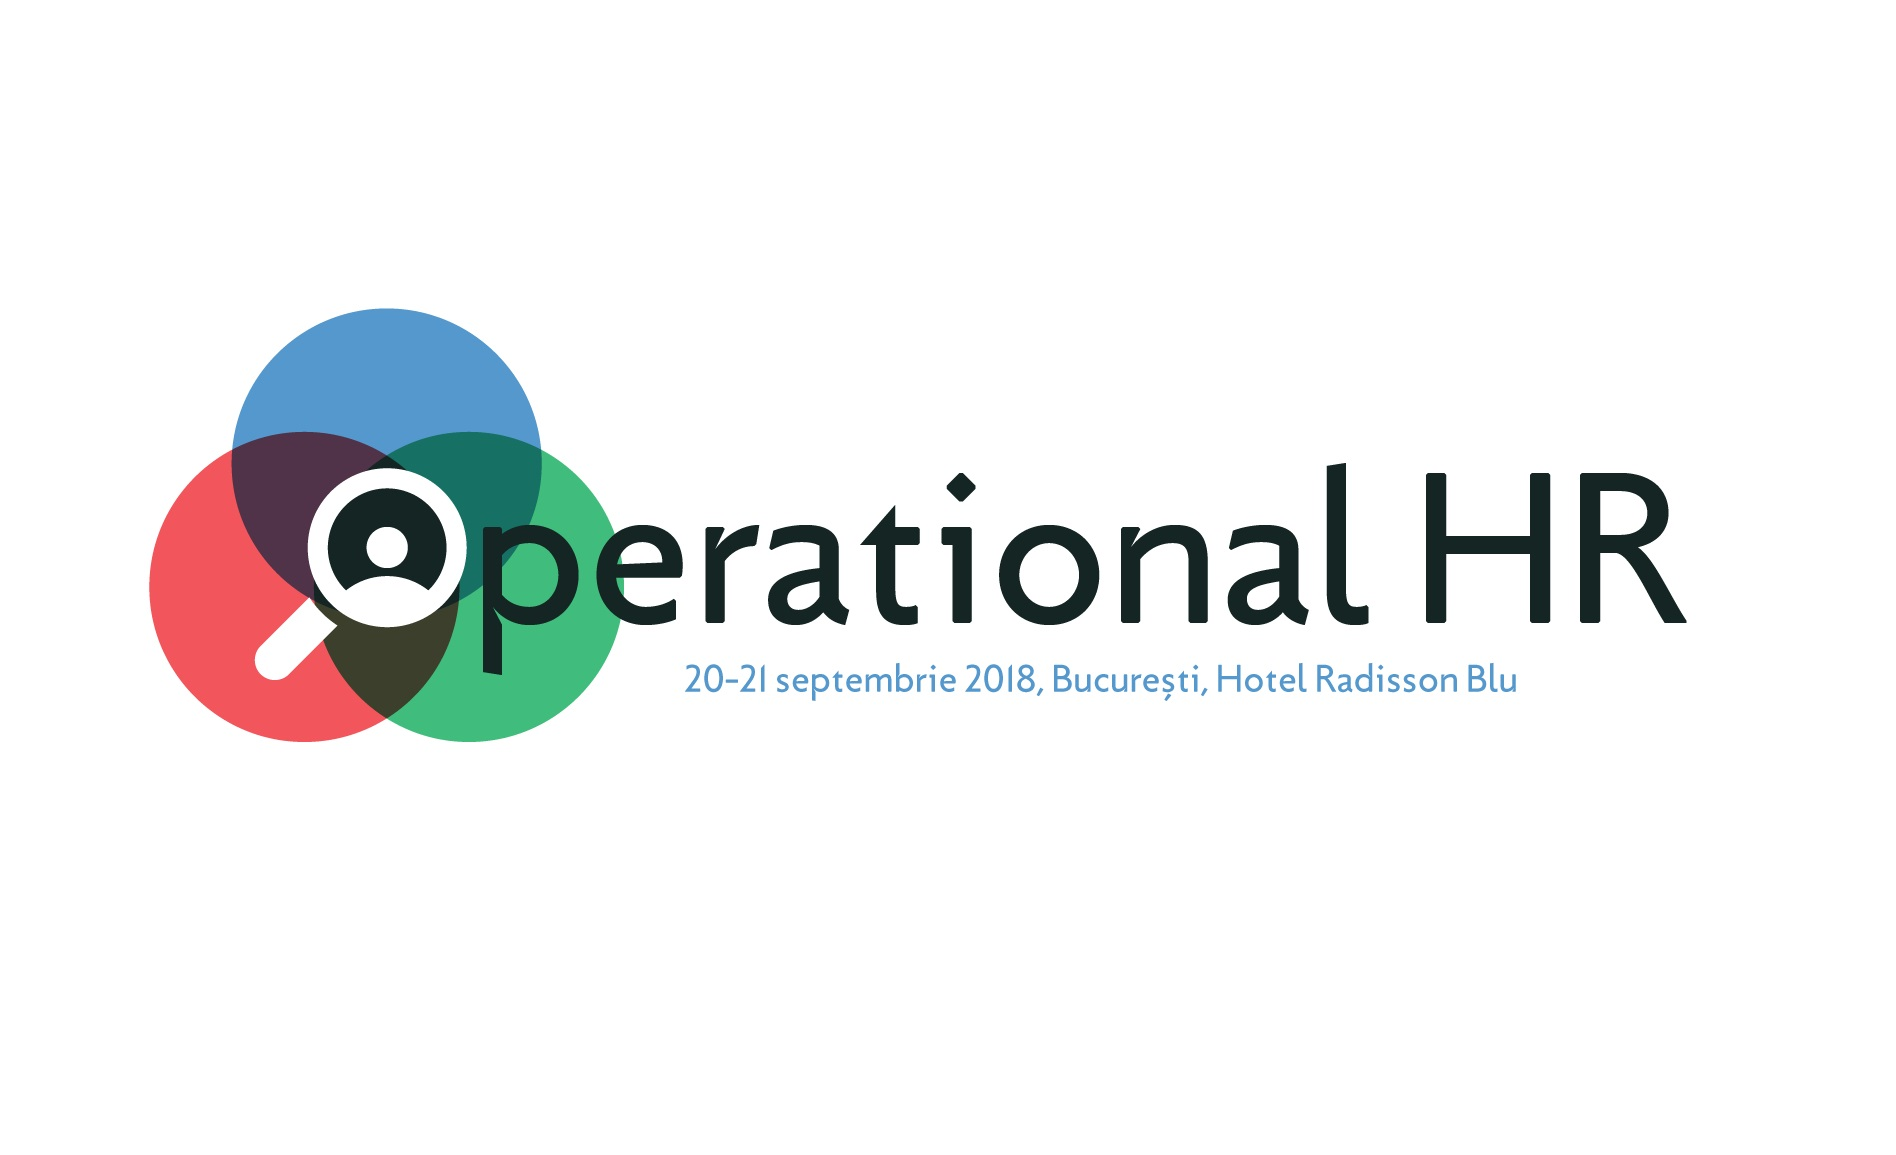 Operational HR Bucharest